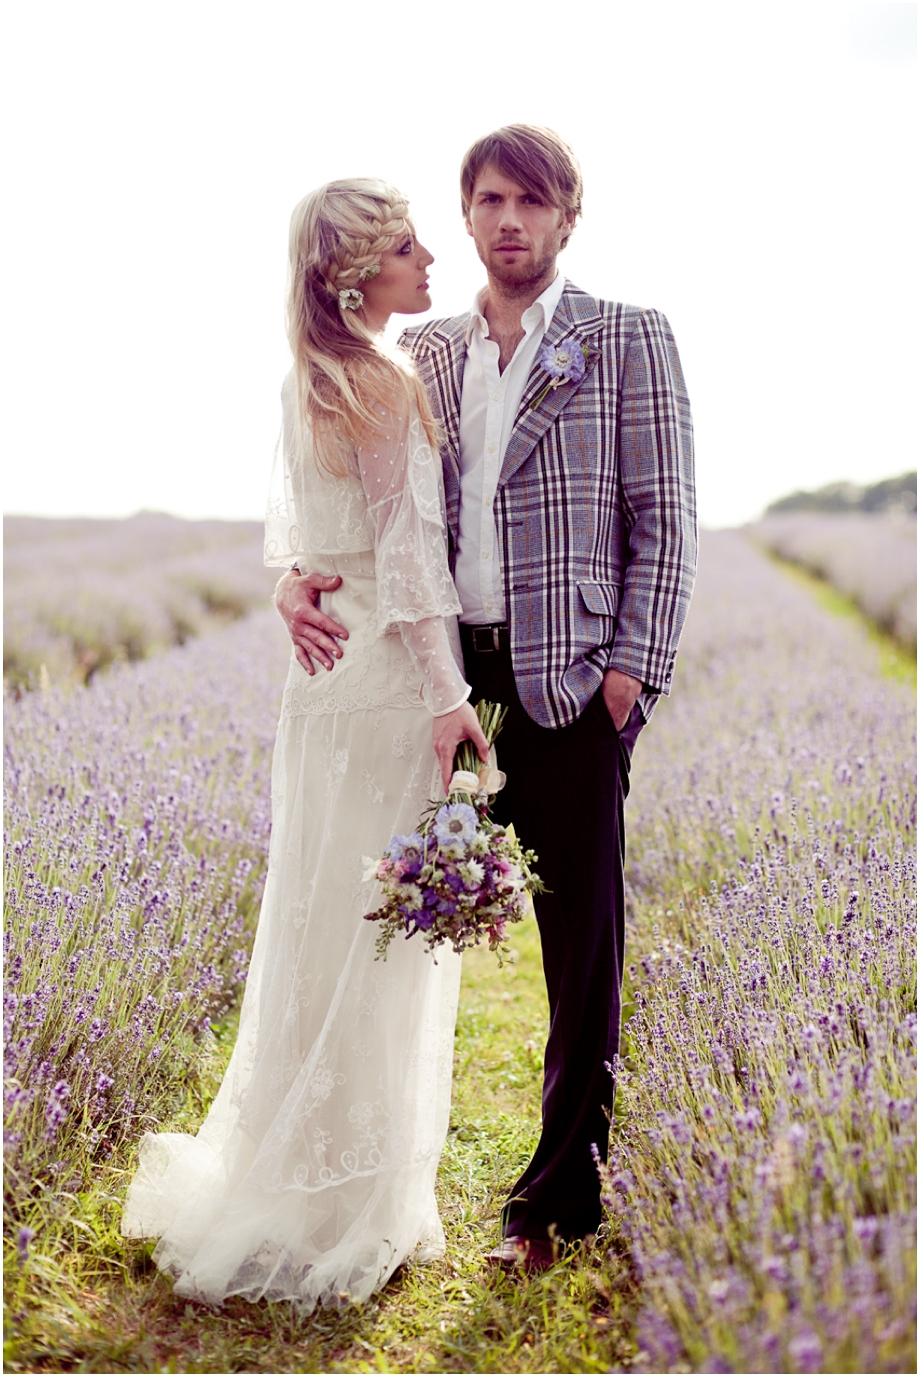 wedding-photography-eddie-judd-surrey-boho-lavender_0011.jpg